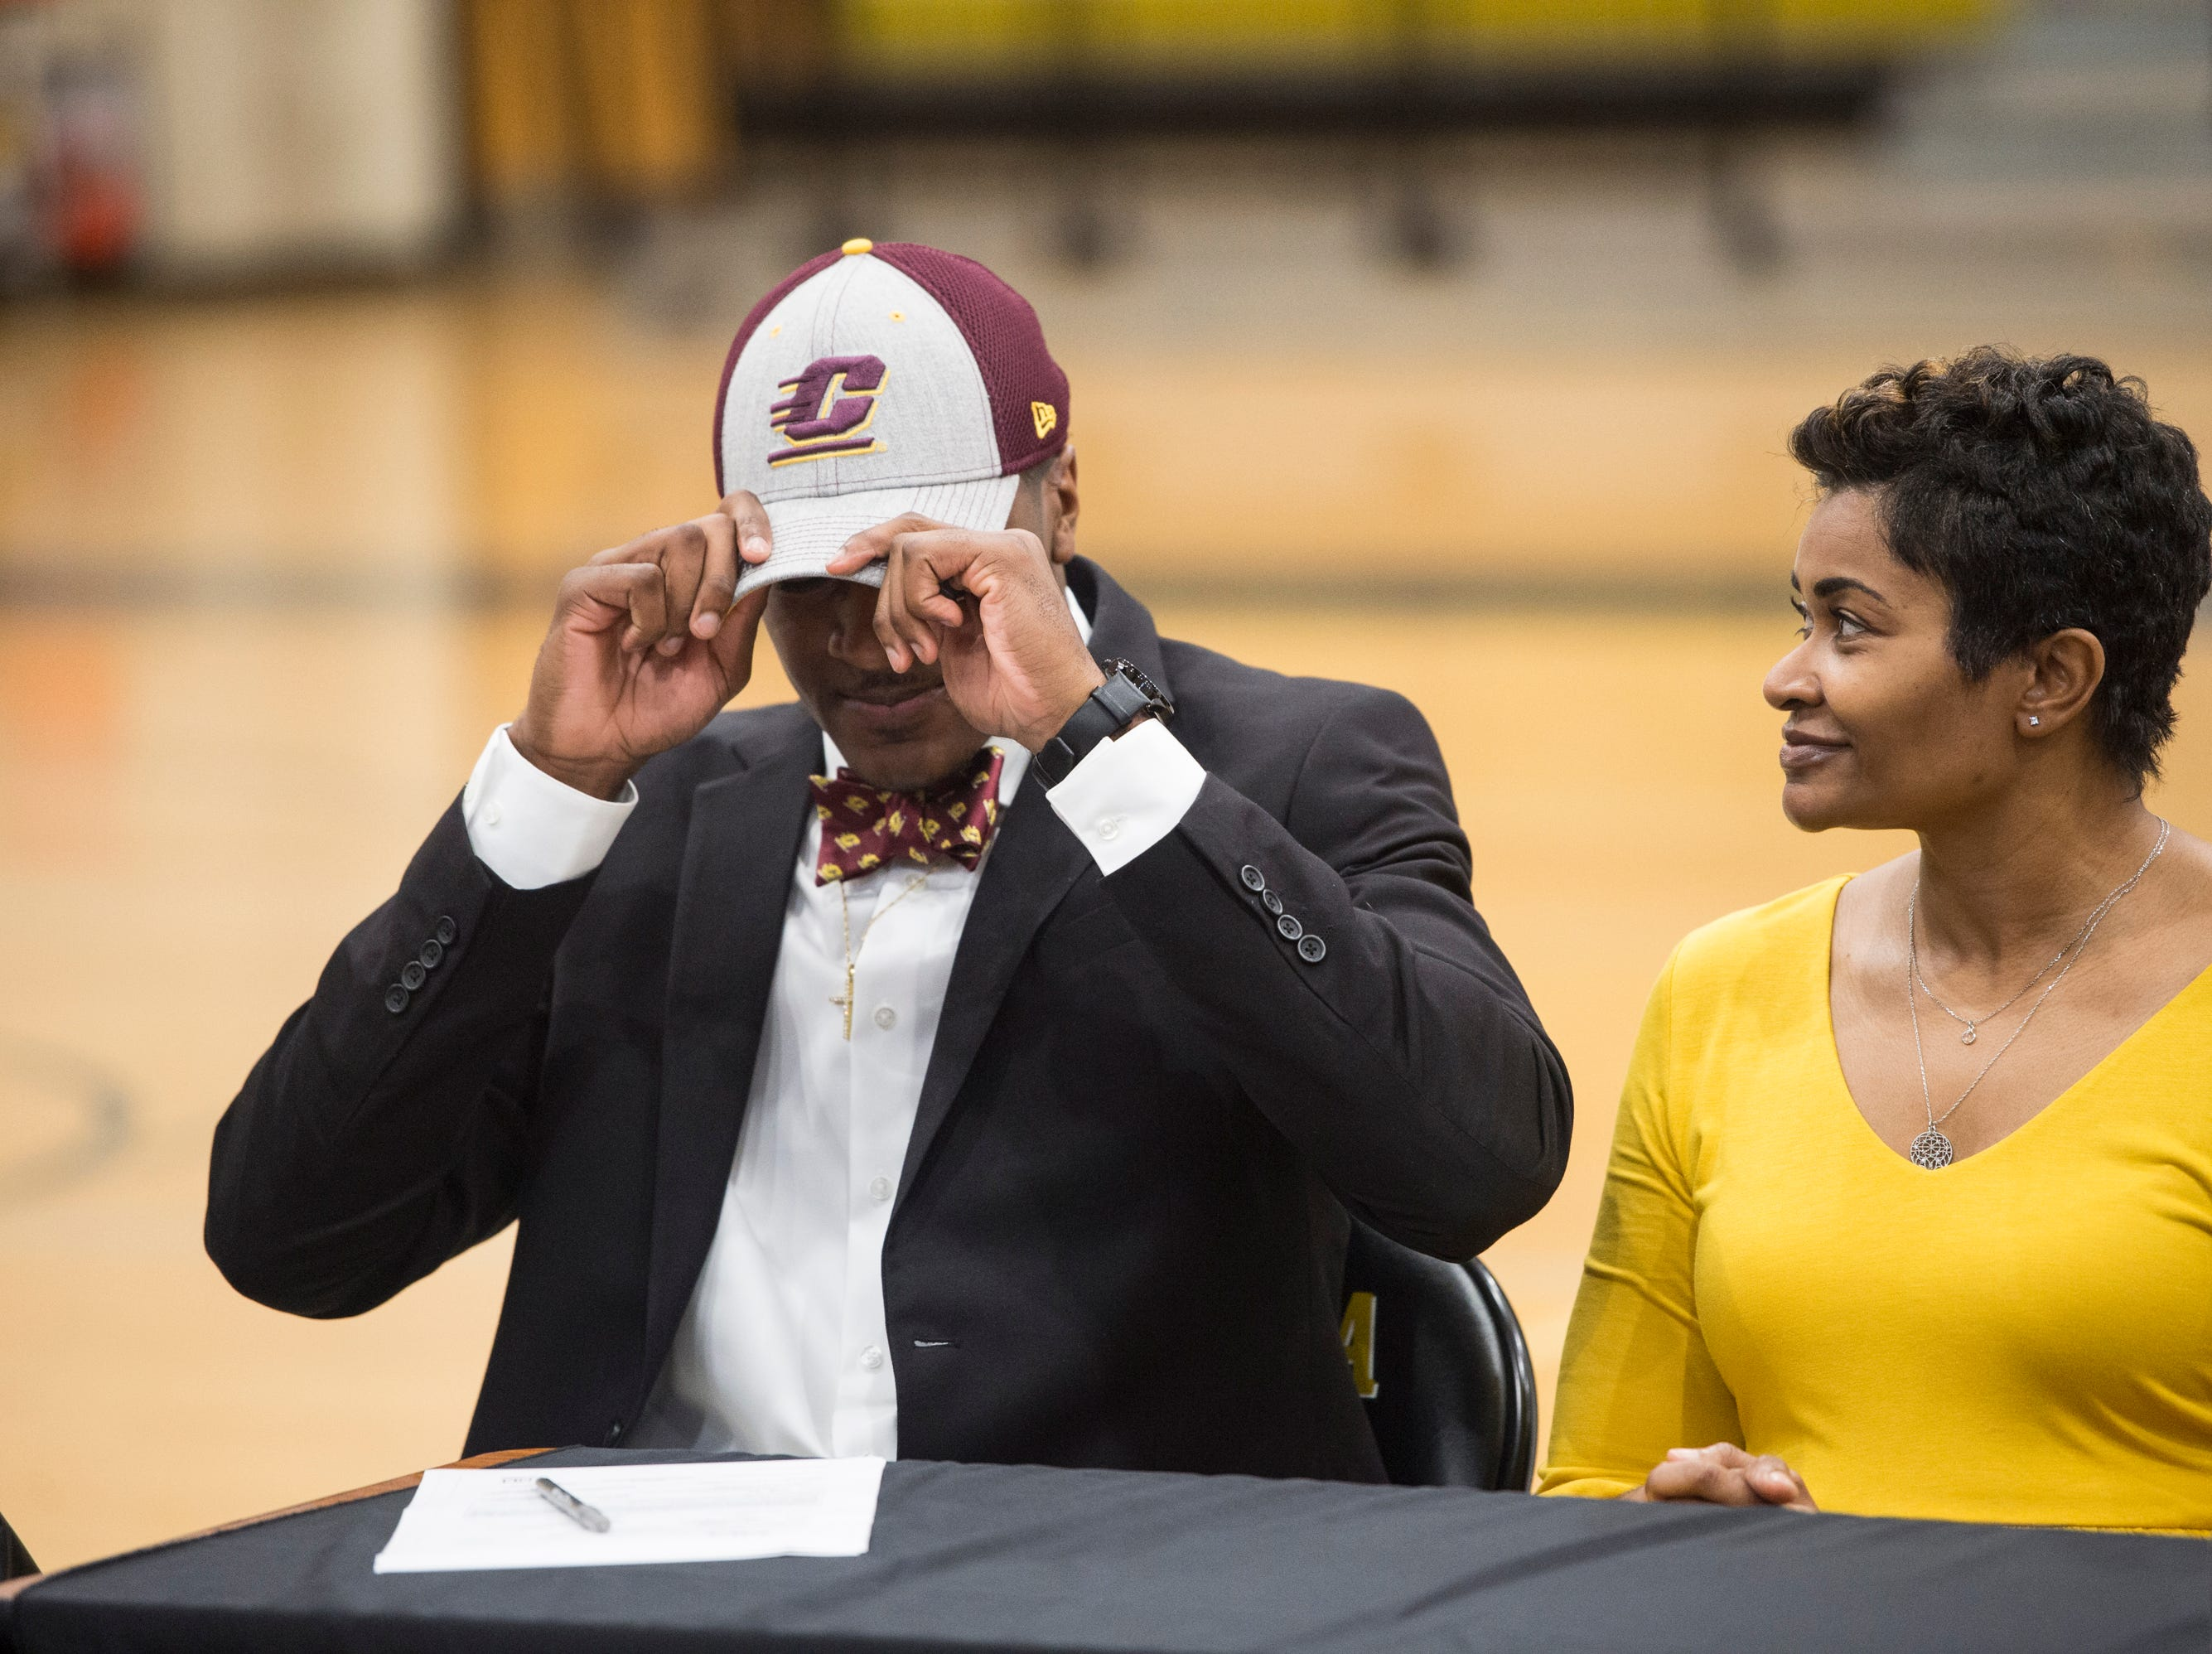 Trey Jones signs his letter of intent to Central Michigan during signing day at Wetumpka High School in Wetumpka, Ala., on Wednesday, Feb. 6, 2019.